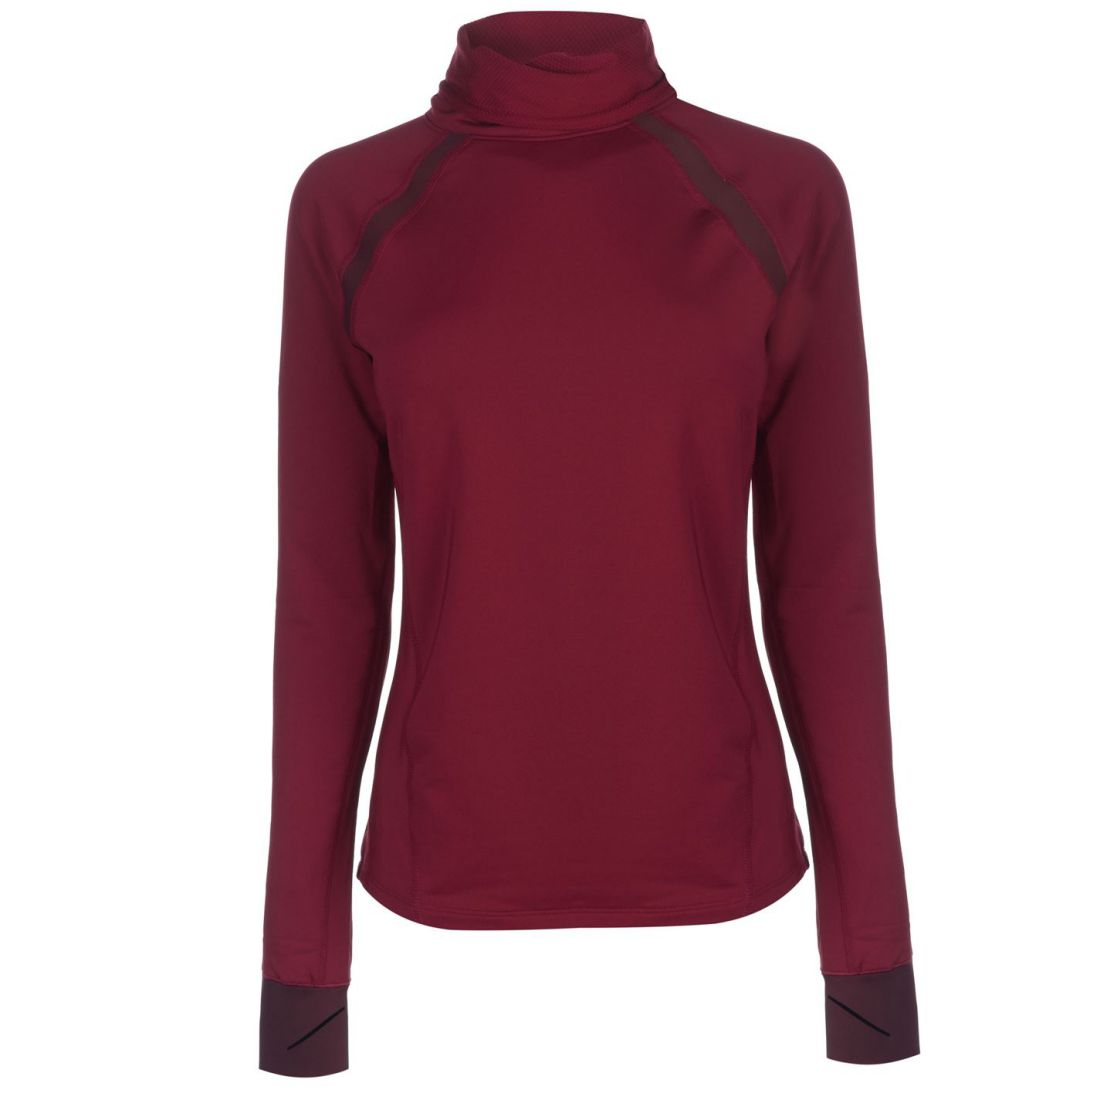 d2d70b5fbac Image is loading Under-Armour-ColdGear-Reactor-Funnel-Neck-Running-Top-